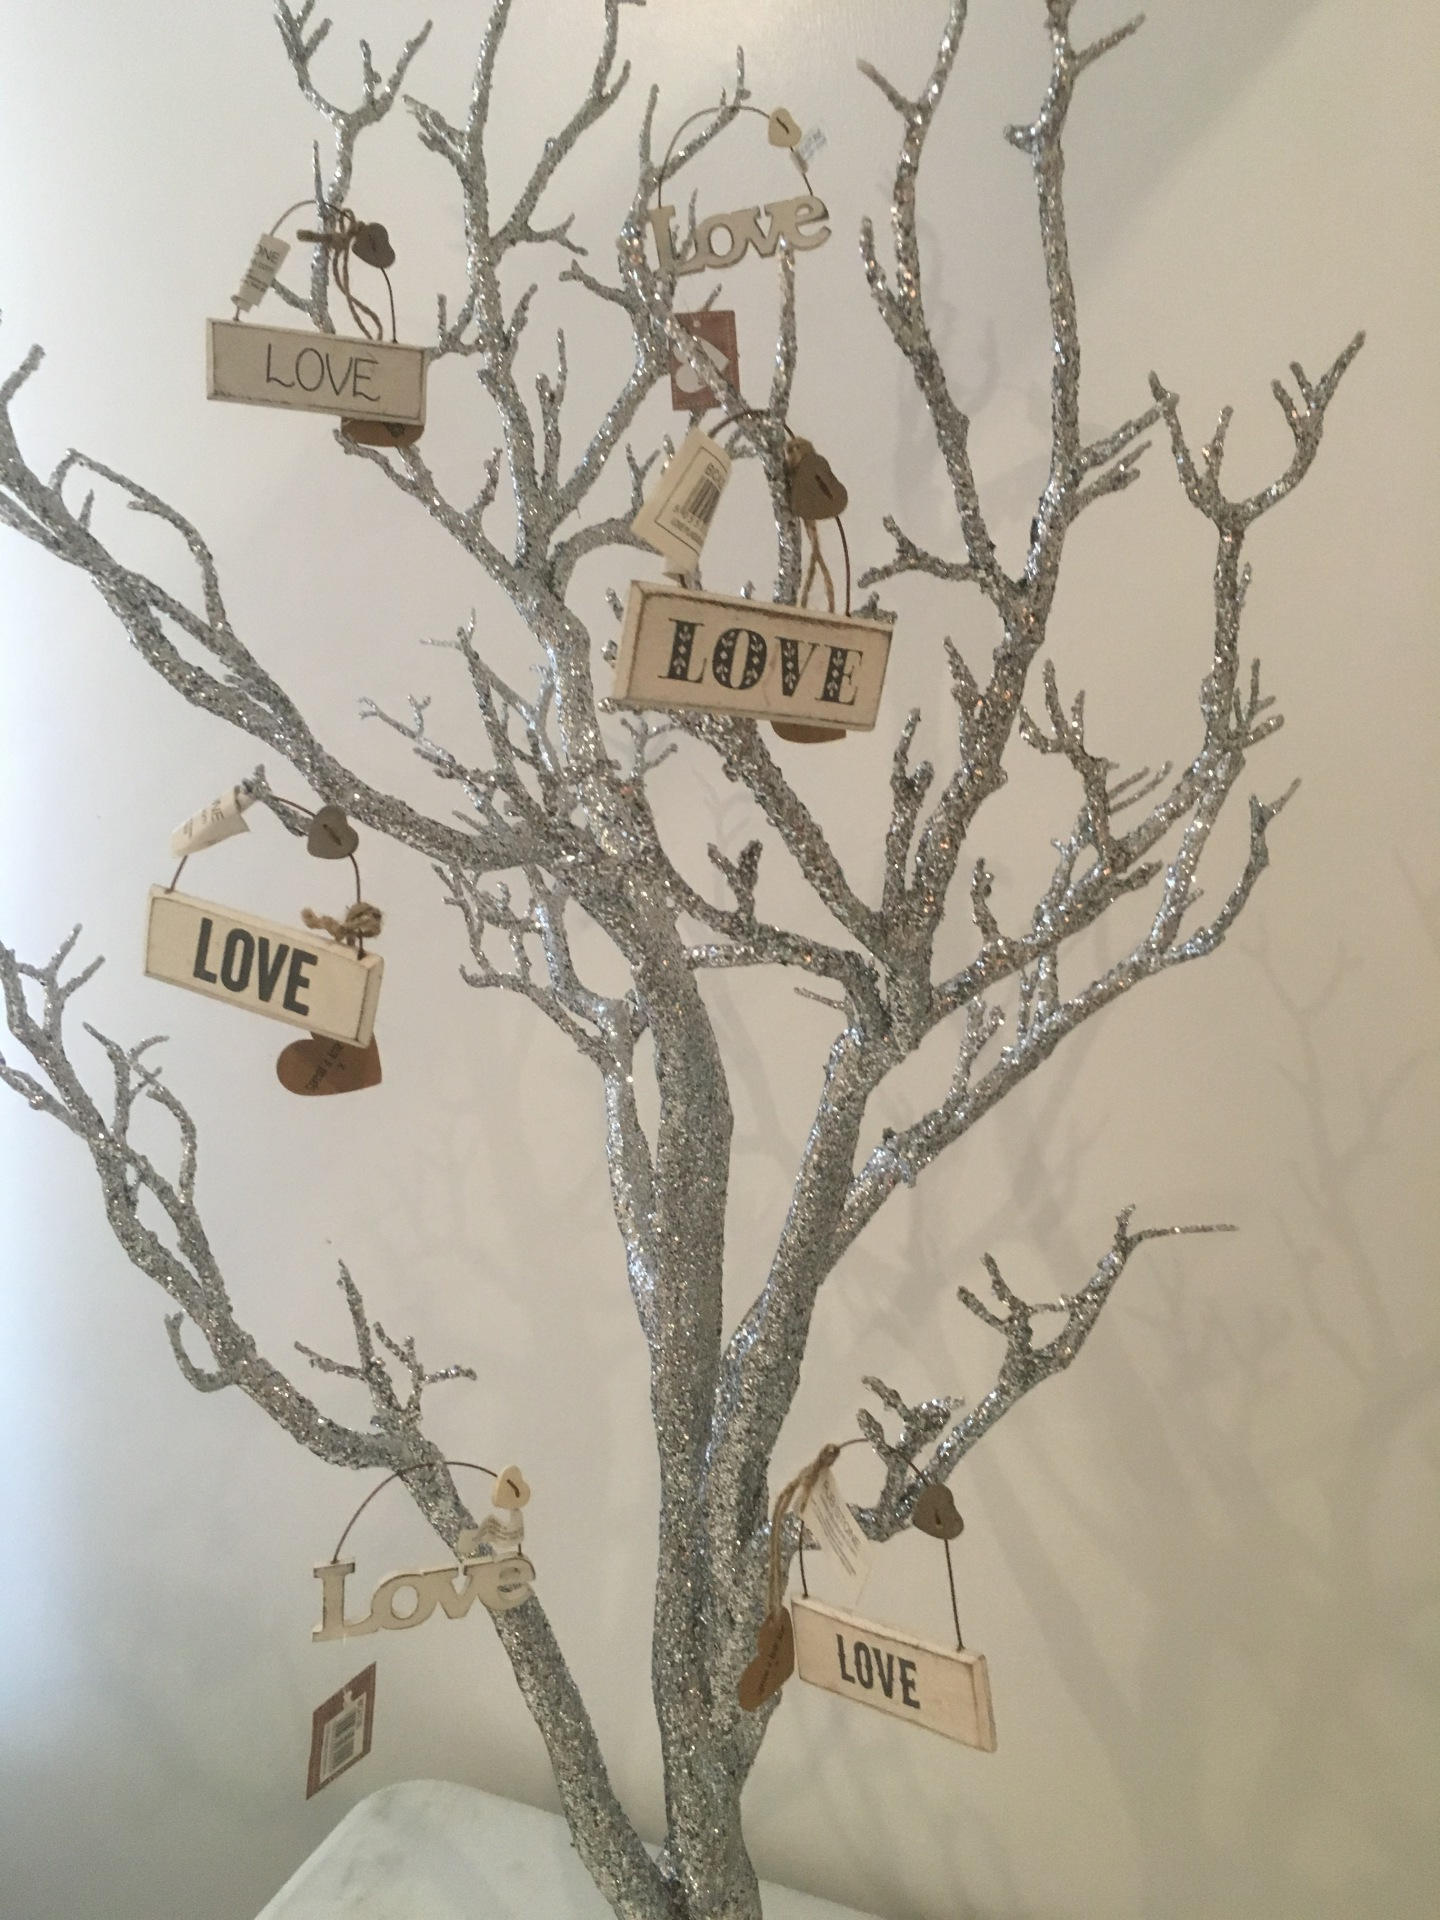 Manzanita trees in silver shown with hanging love decor